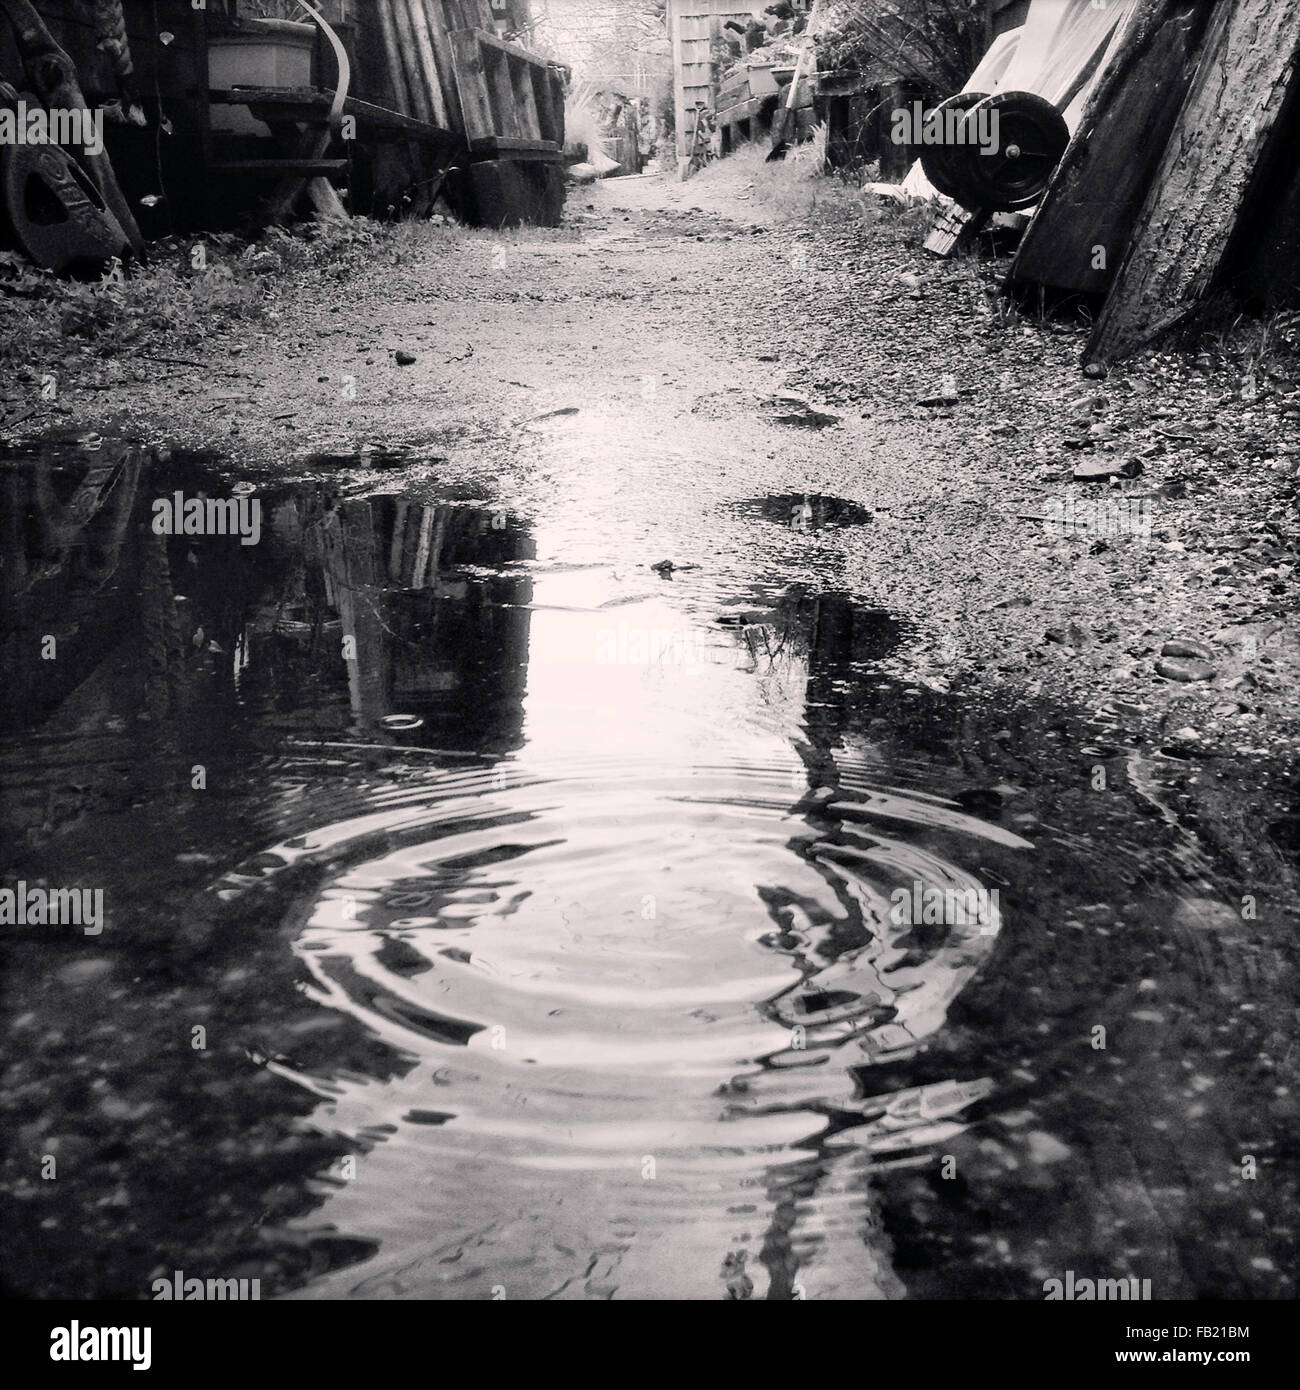 raindrop in puddle - Stock Image